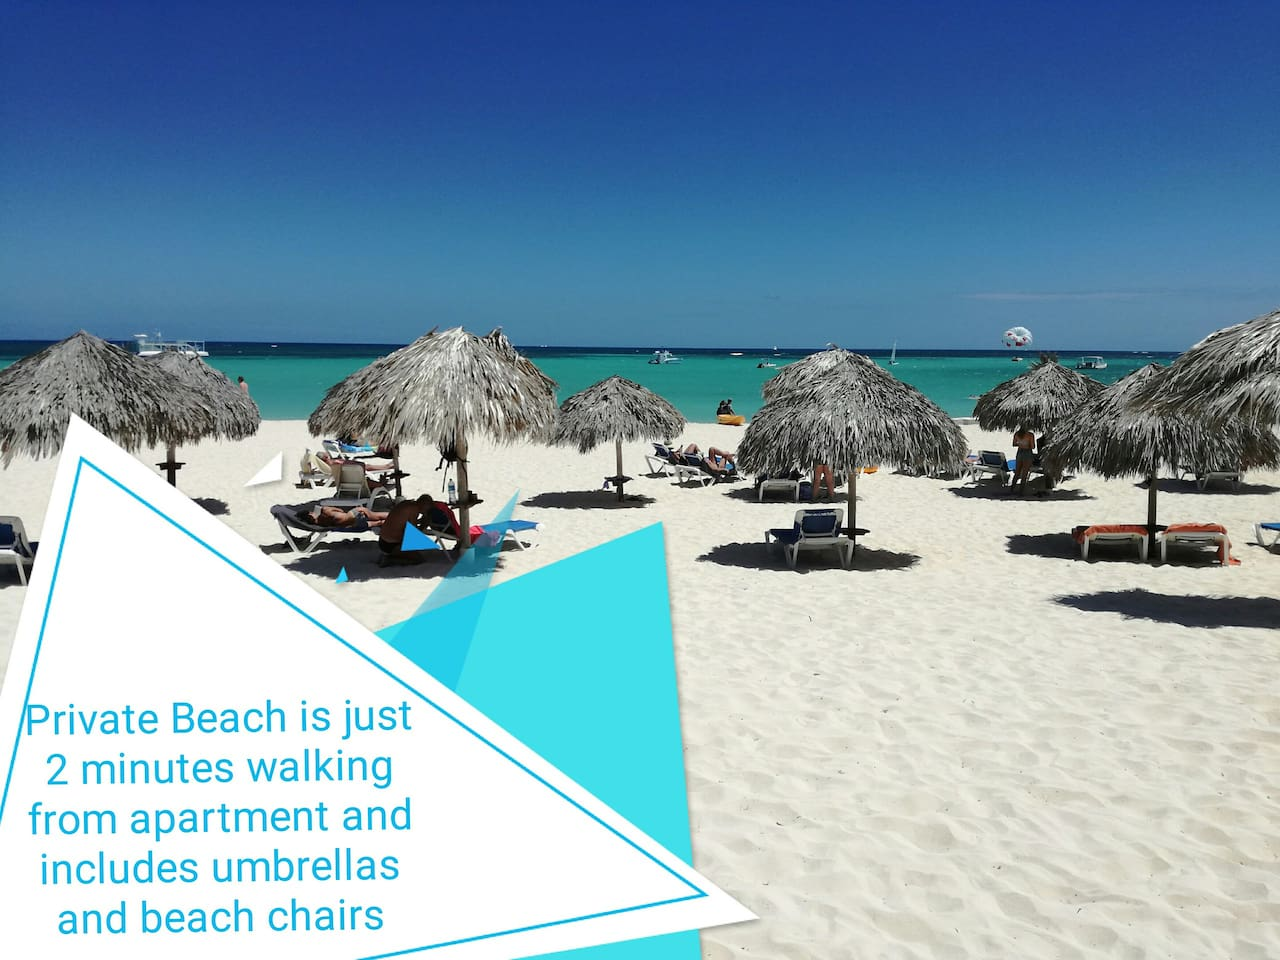 Amazing private beach just 2 minutes walking distance and includes umbrellas and beach chairs for free